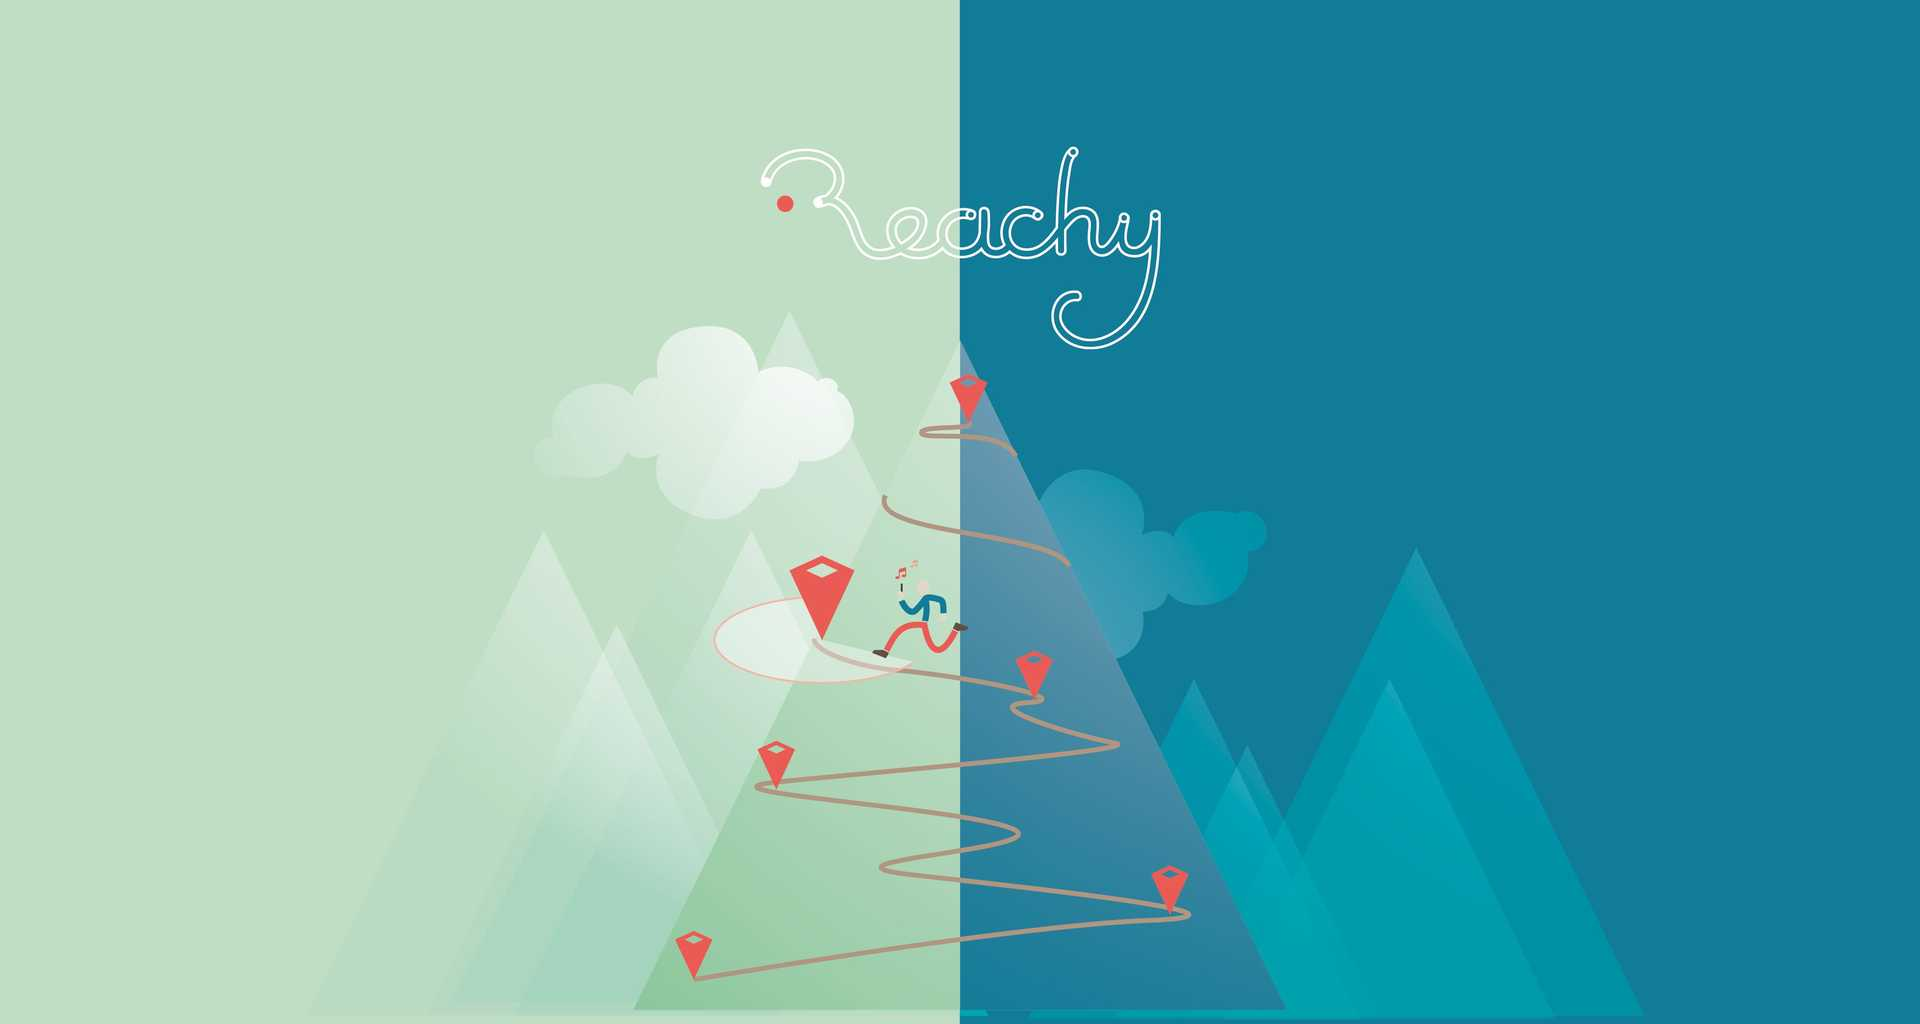 Reachy - Illustration in reality